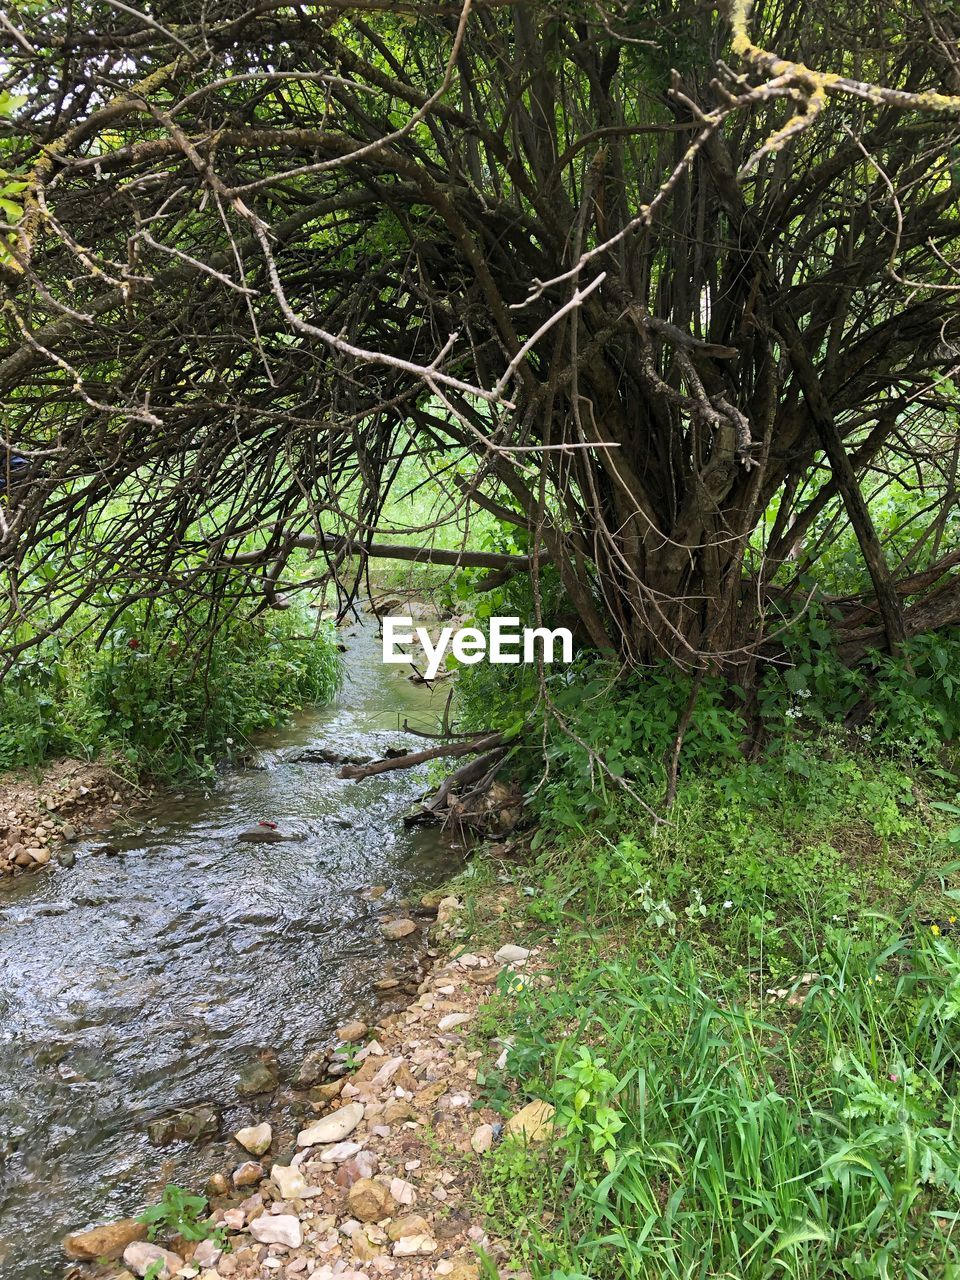 plant, tree, forest, nature, land, growth, tranquility, water, no people, beauty in nature, river, day, tranquil scene, outdoors, scenics - nature, green color, environment, branch, flowing, flowing water